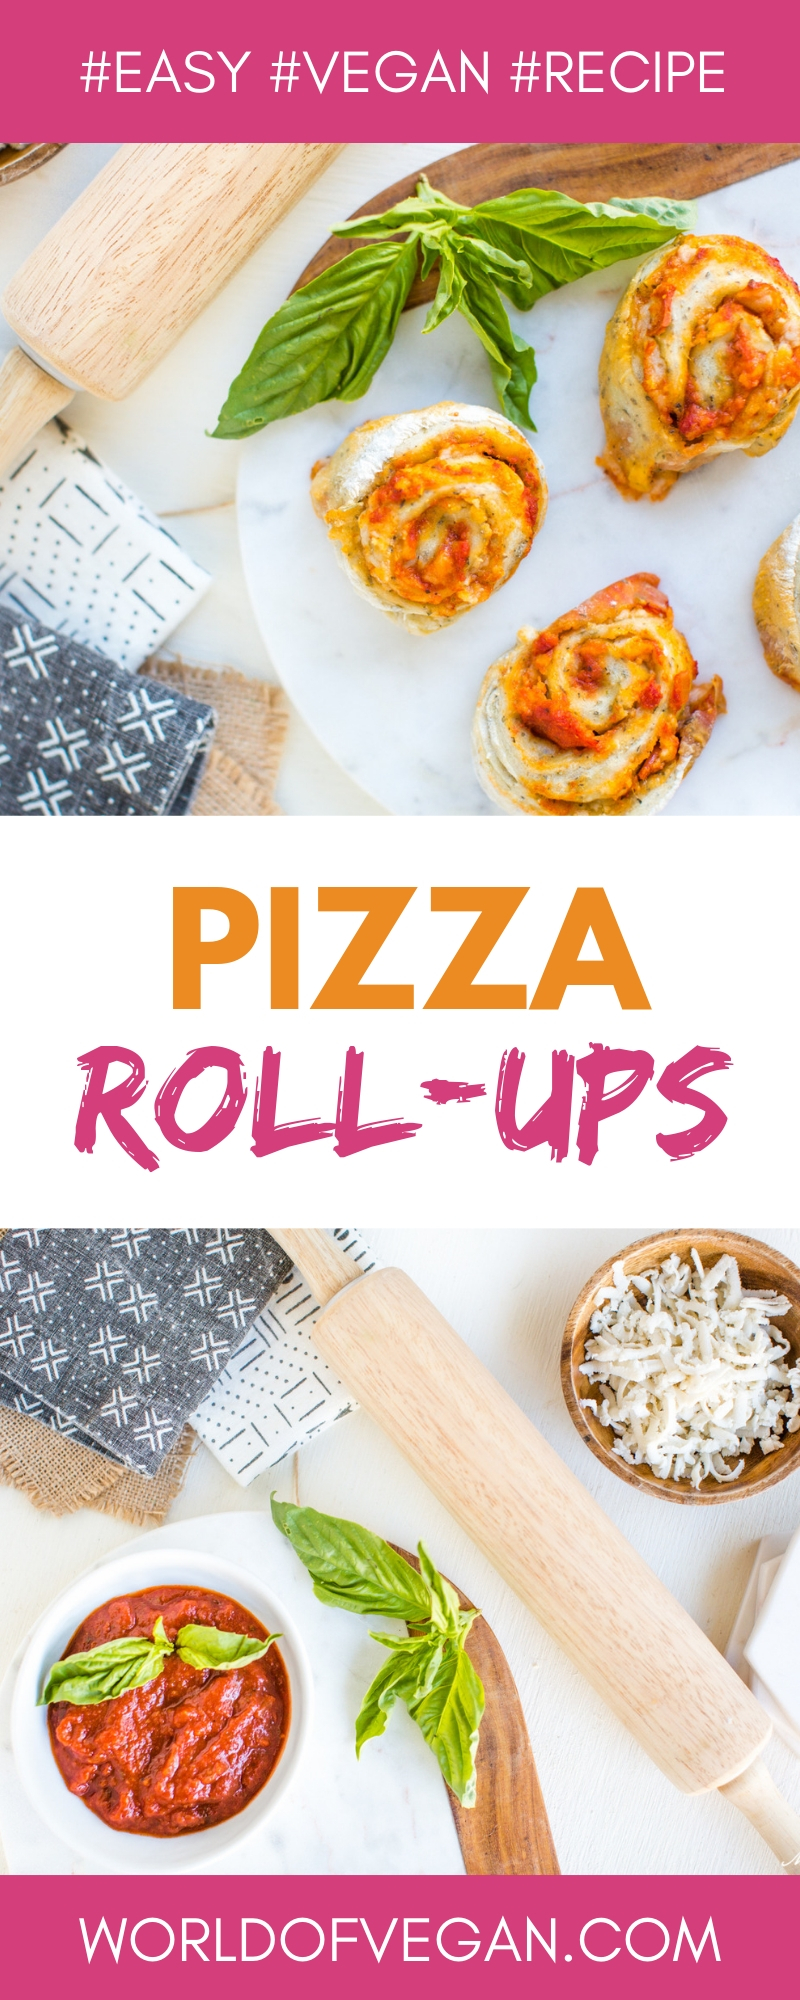 Vegan Pizza Rolls | WorldofVegan.com #vegan #recipe #appetizer #pizza #vegetarian #party #kids